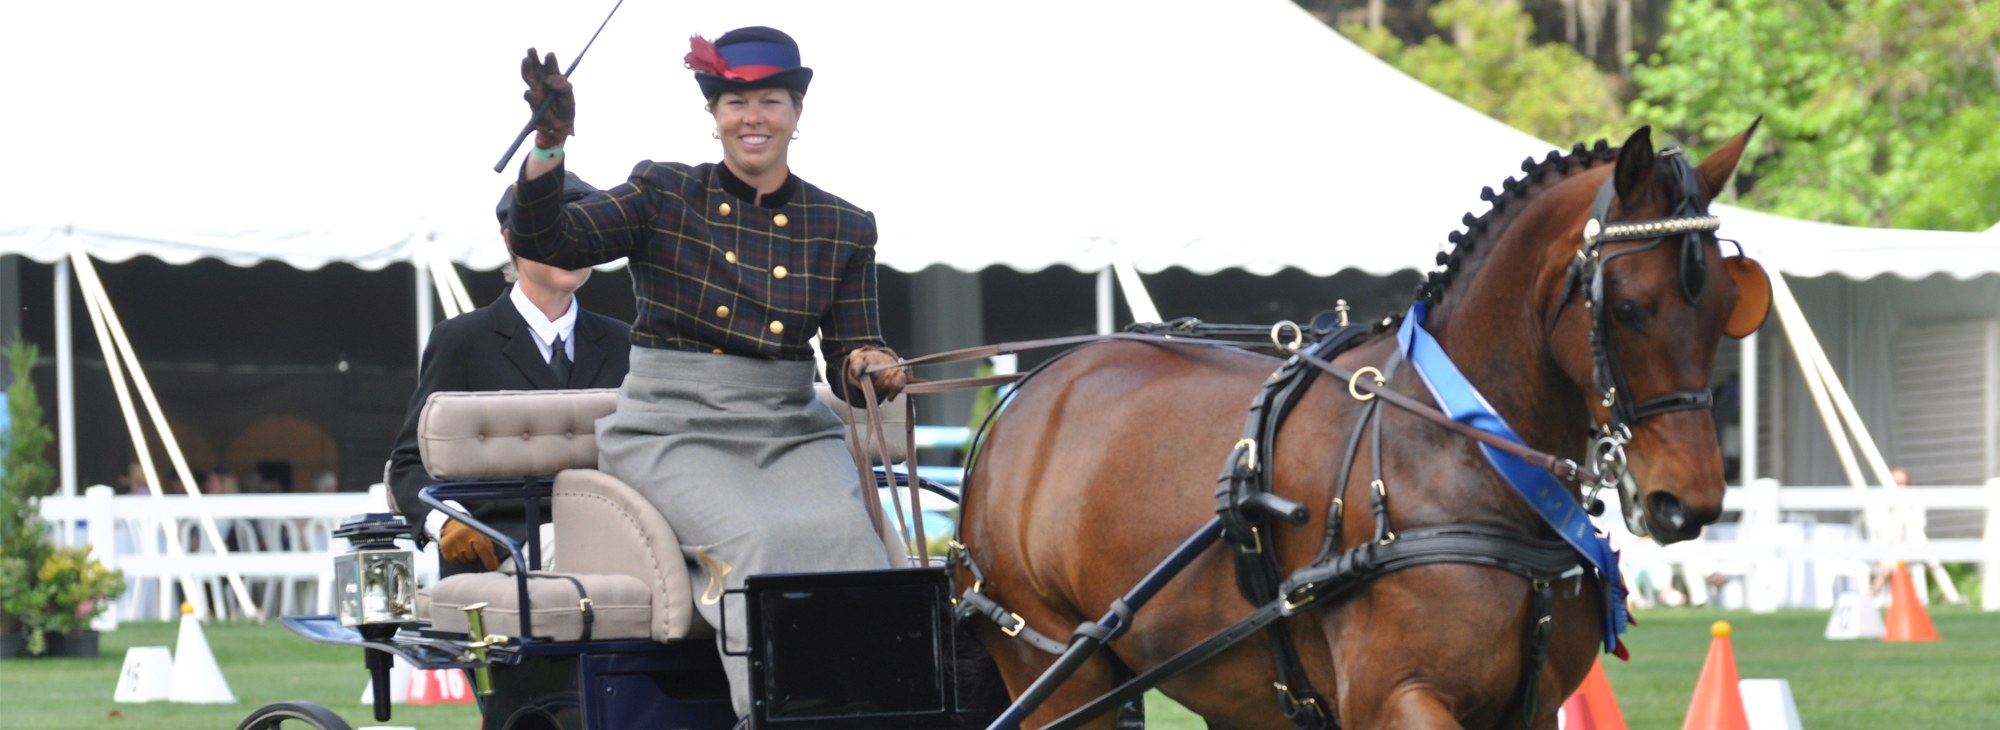 Woman waving driving her Carriage Horse